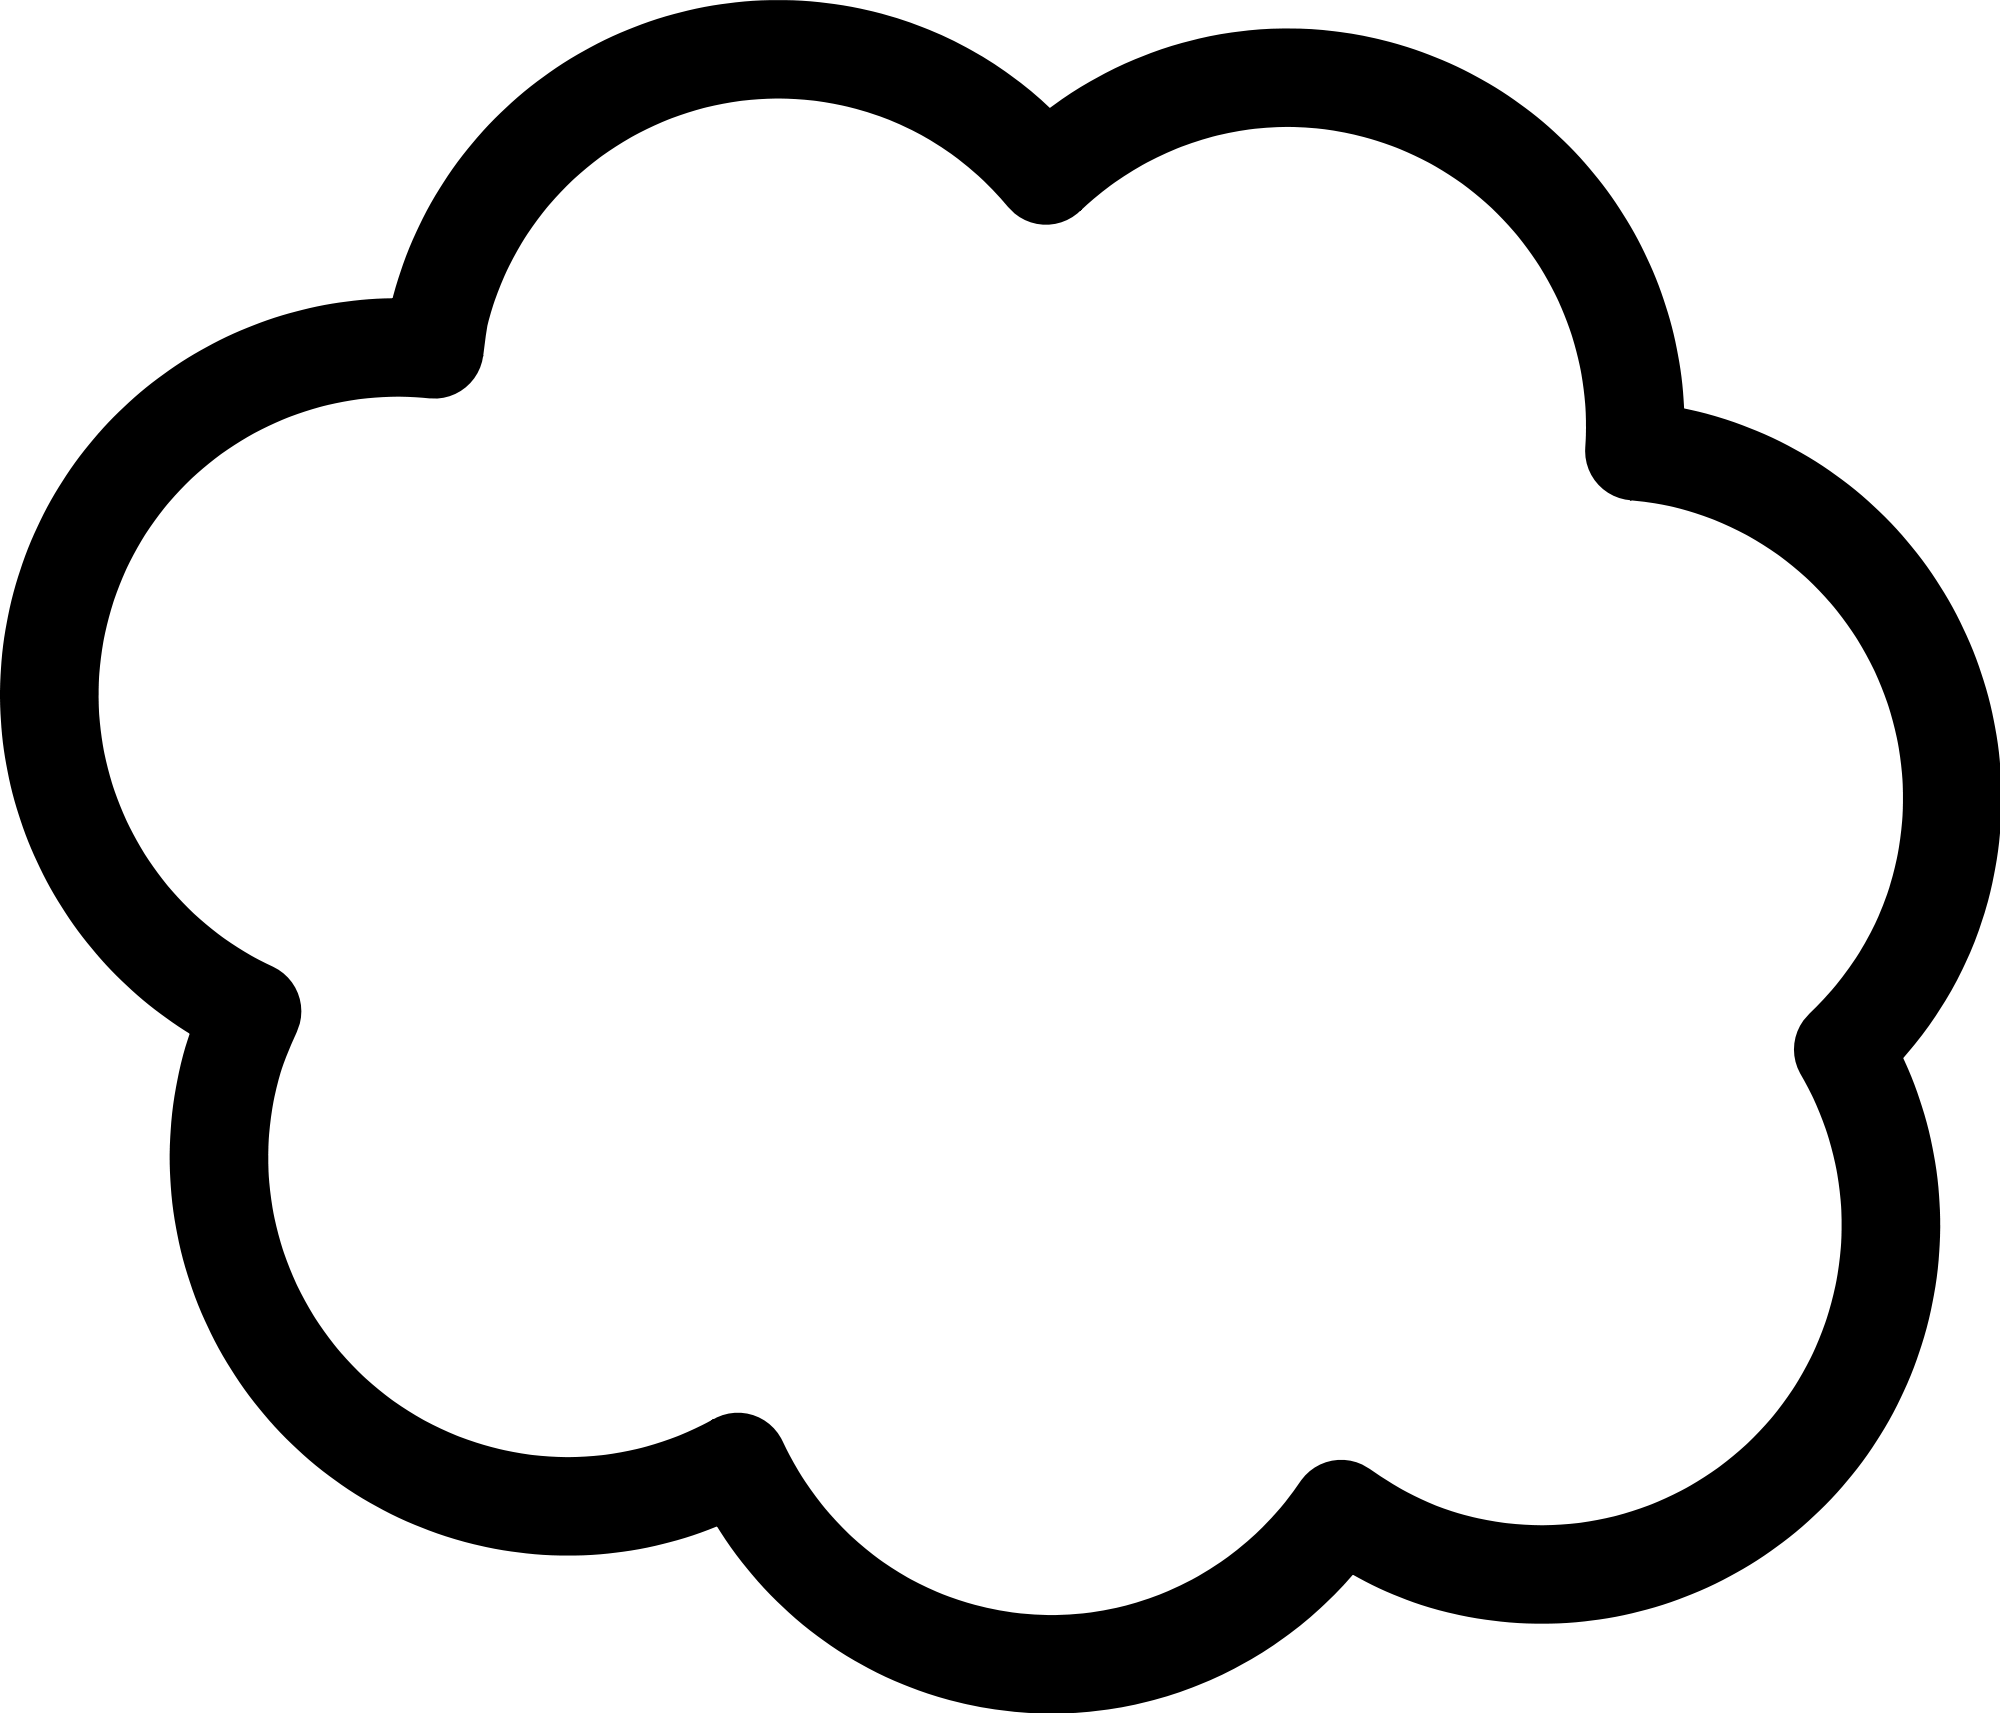 Cloud clipart circle. File svg wikimedia commons